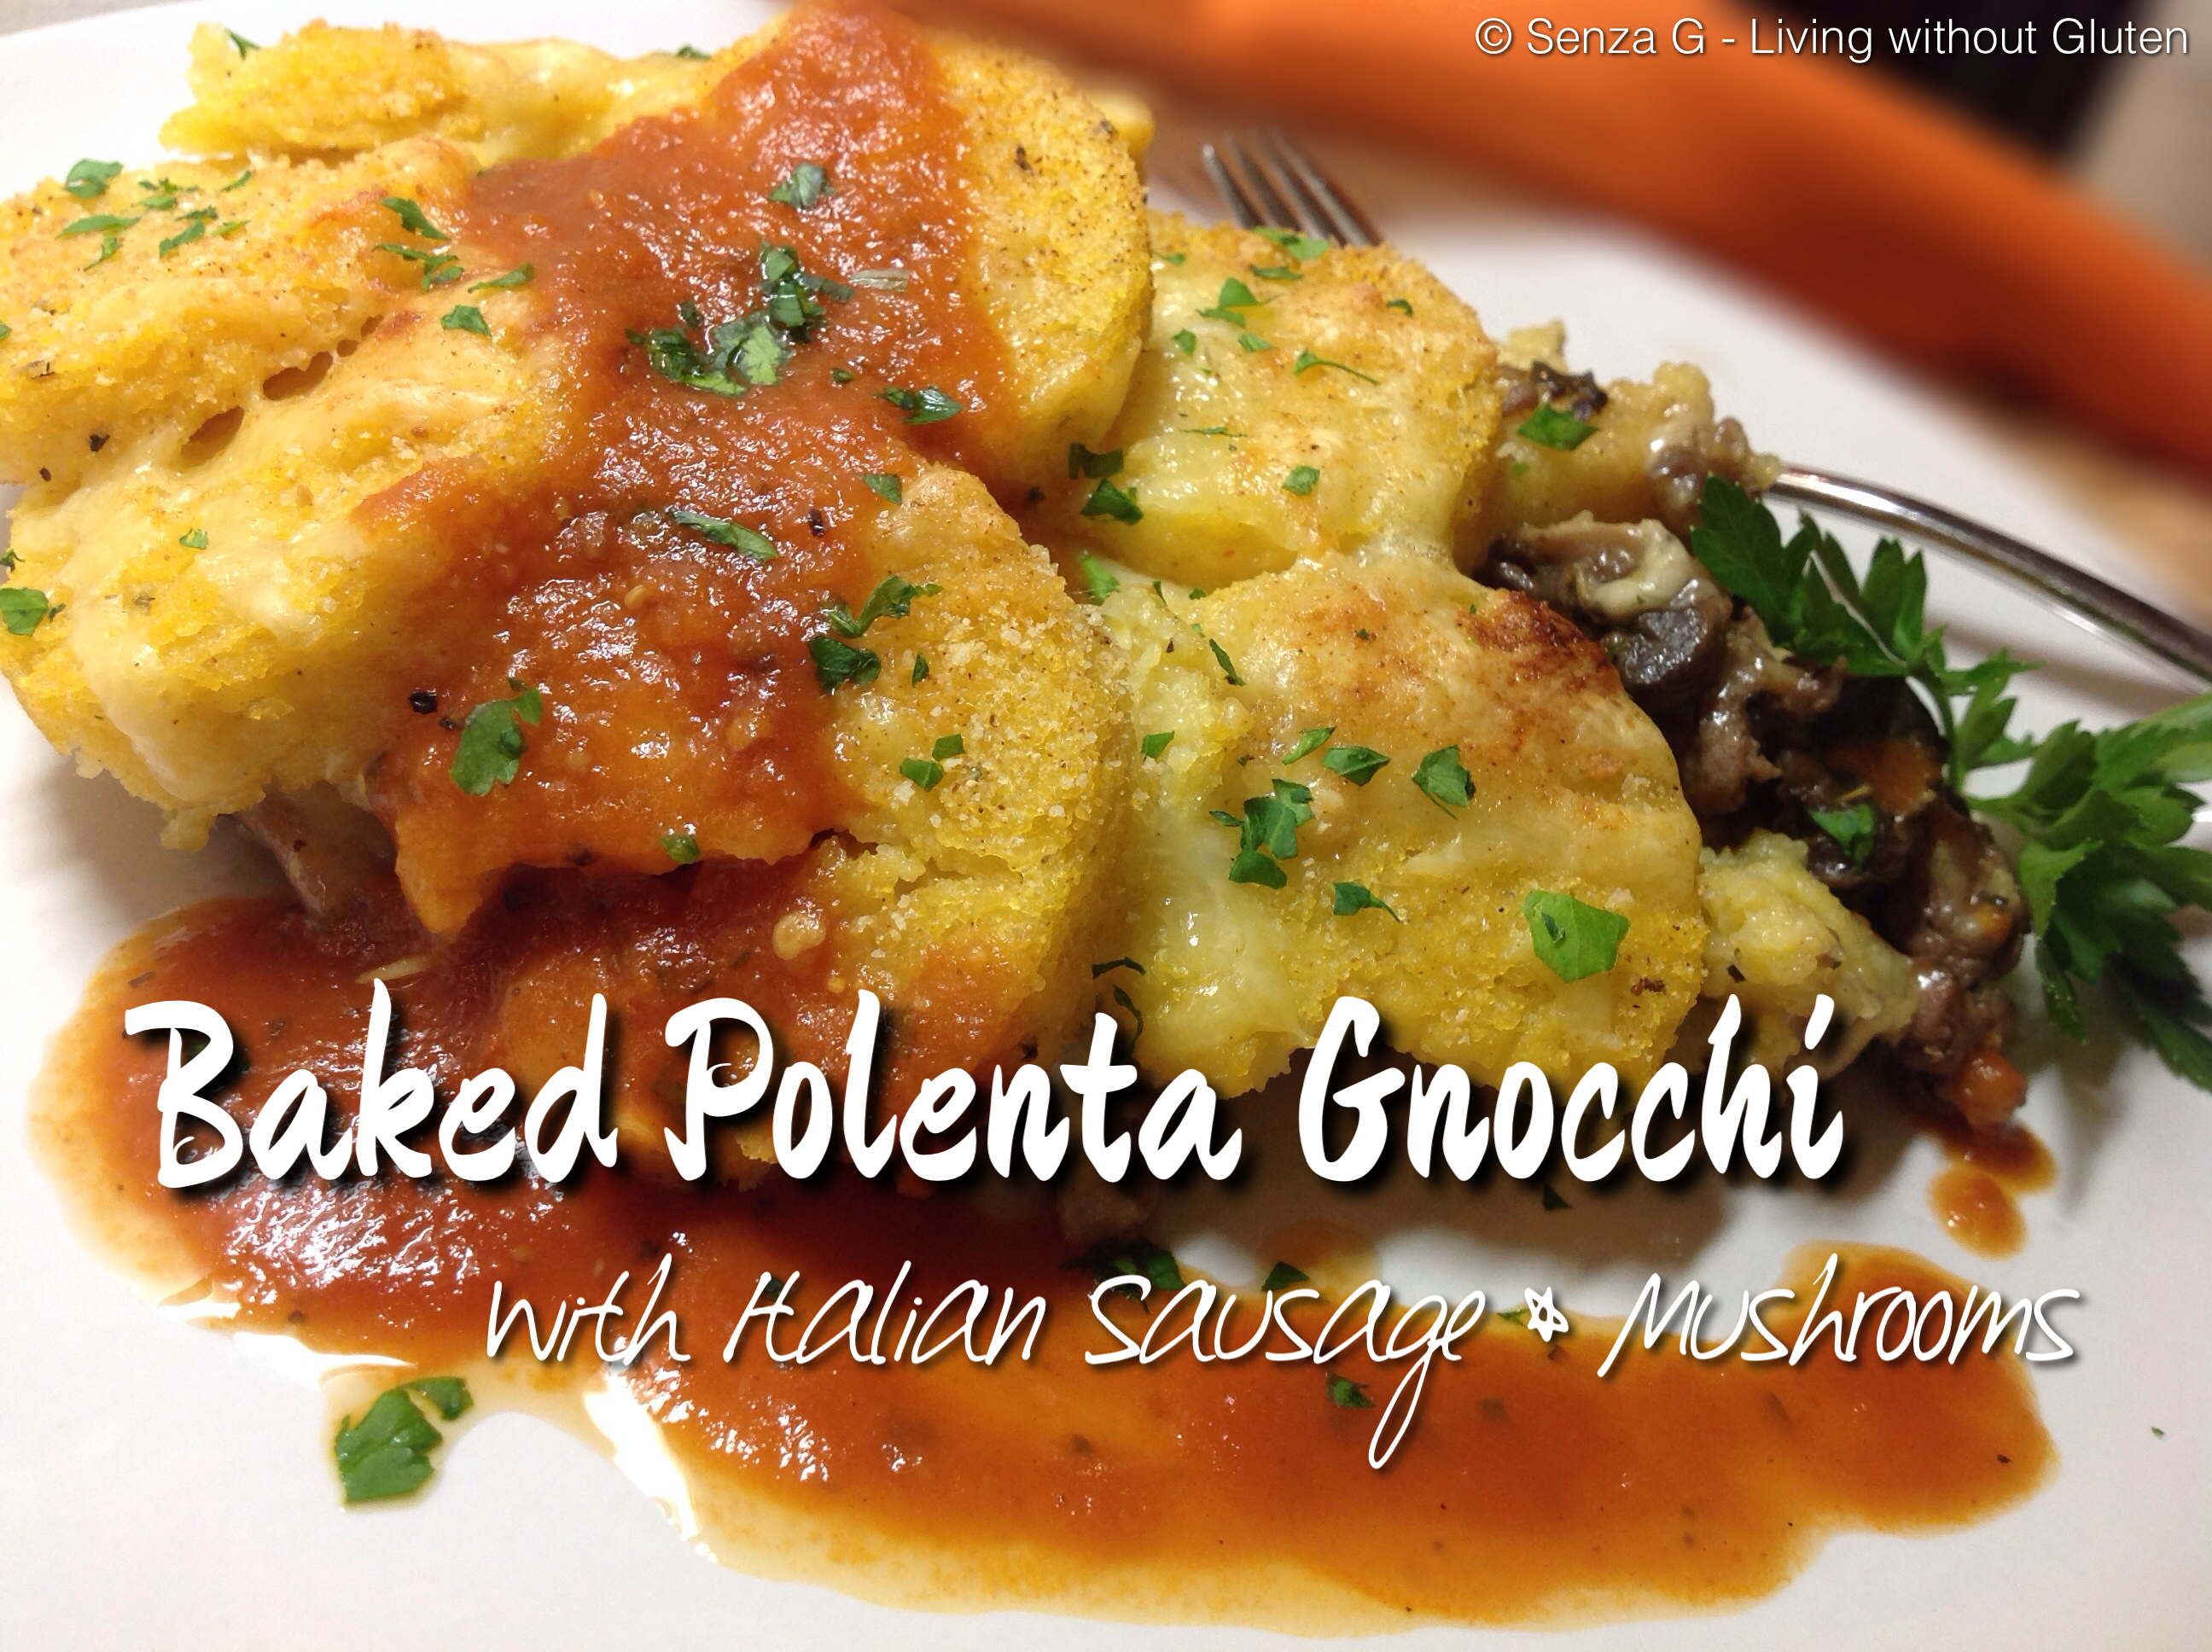 Baked Polenta with Italian Sausage & Mushrooms Senza-G